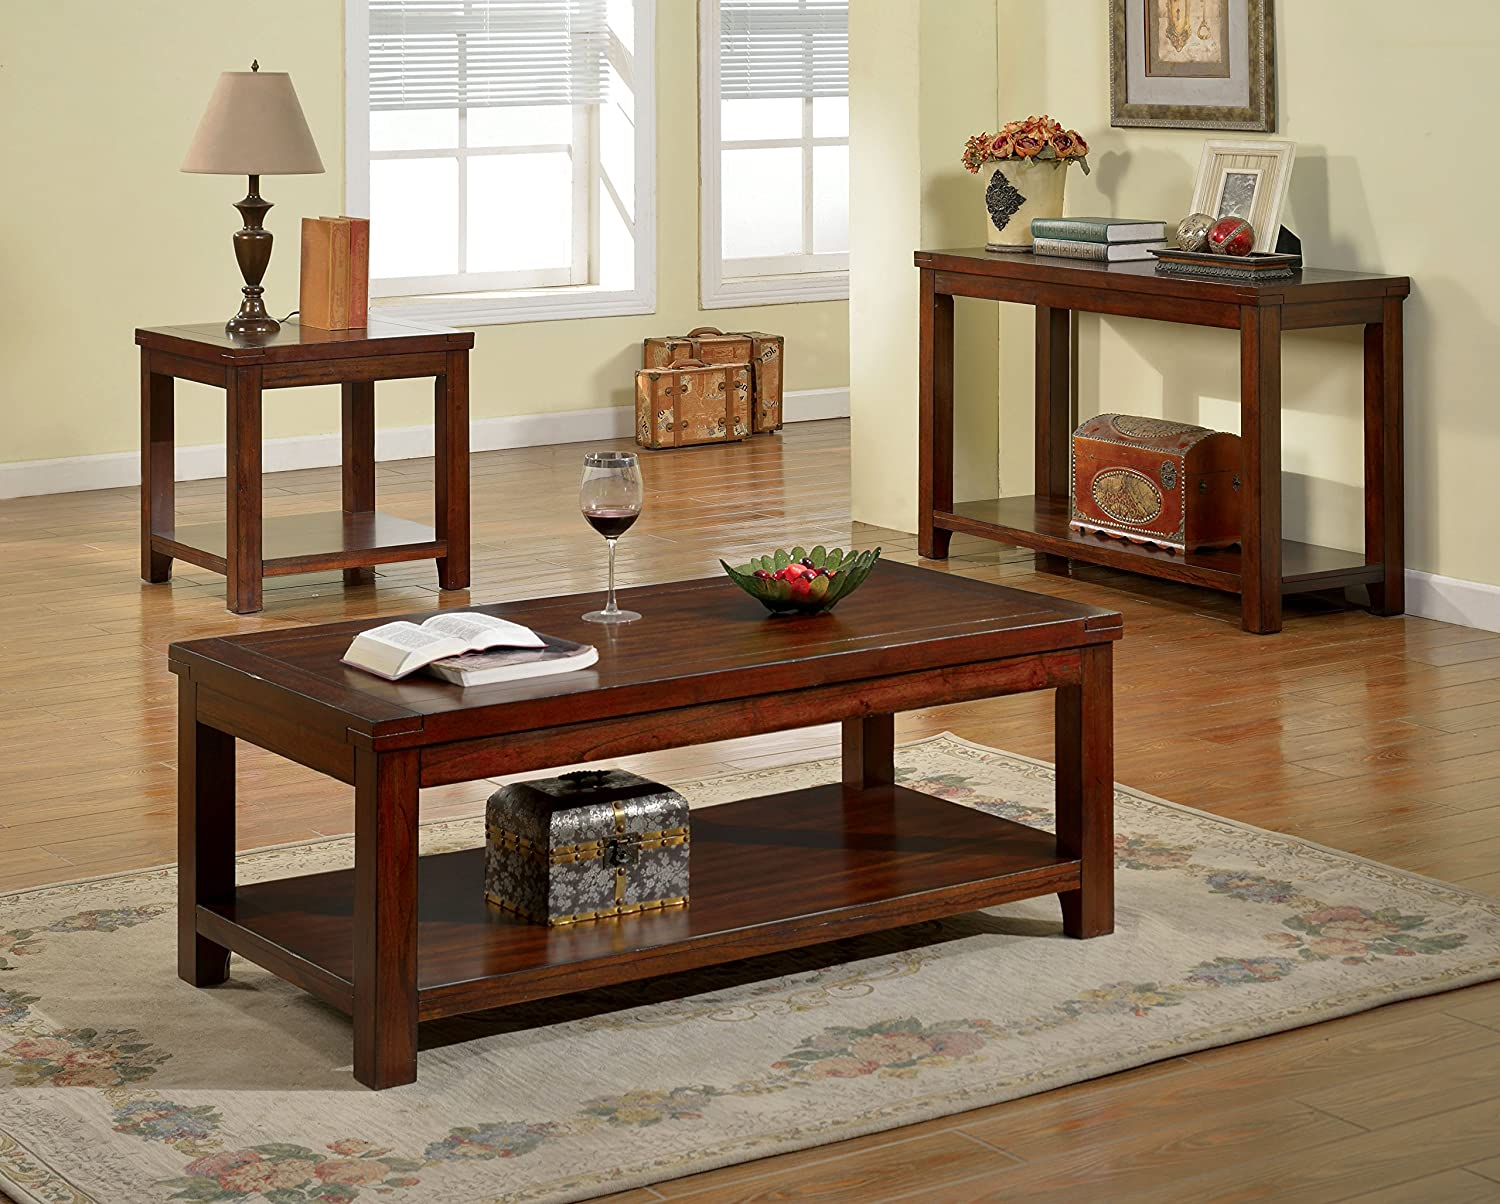 Furniture Of America Torrence Transitional Coffee Table Dark Cherry Amazon Ca Home Kitchen [ 1204 x 1500 Pixel ]